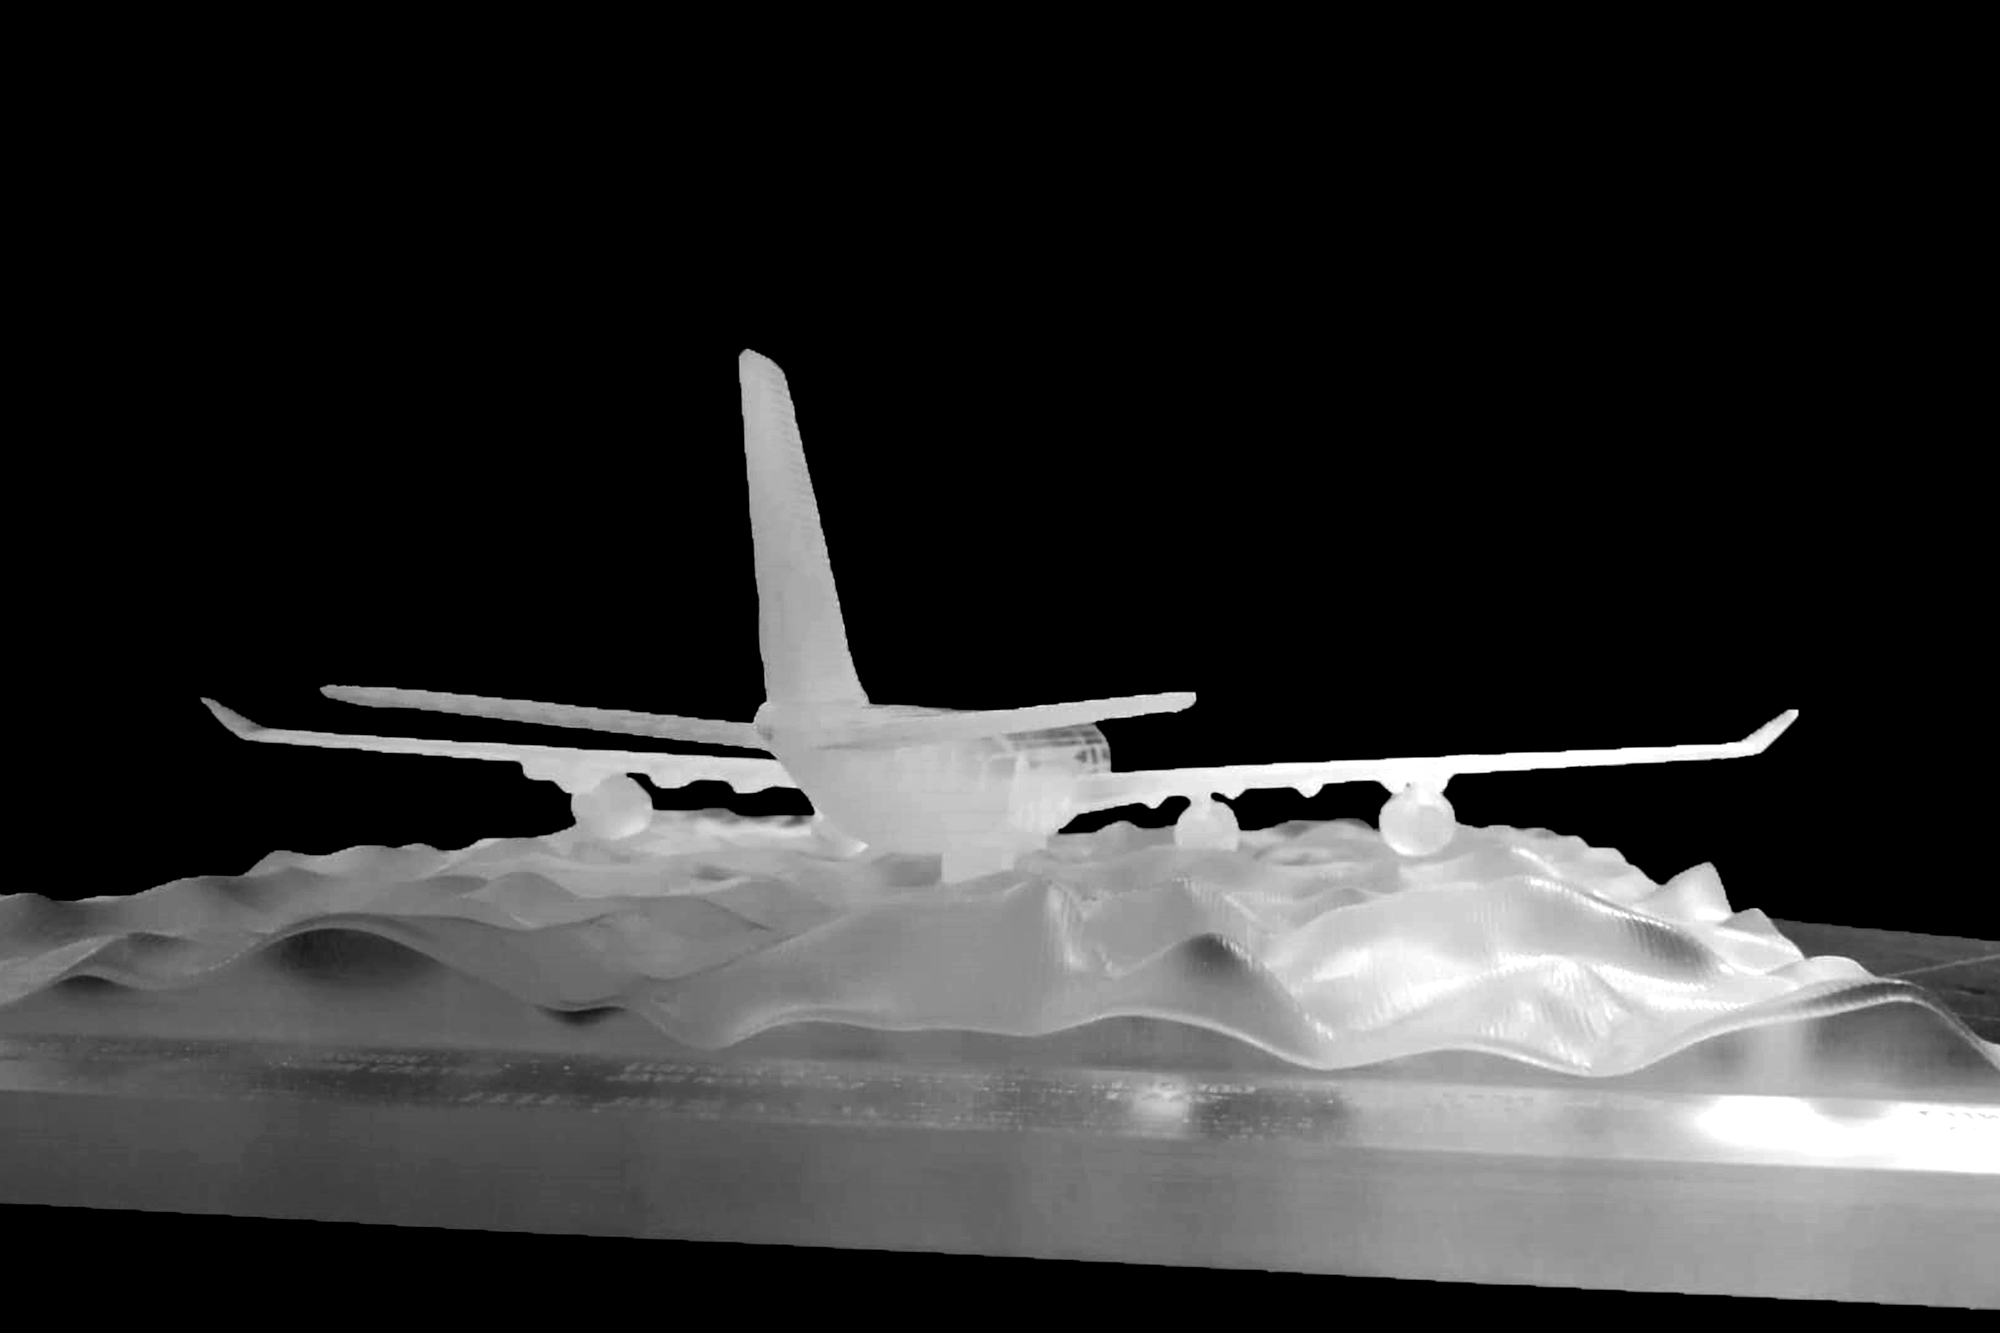 Airbus-A340_-Maquetas-_-EXarchitects_08